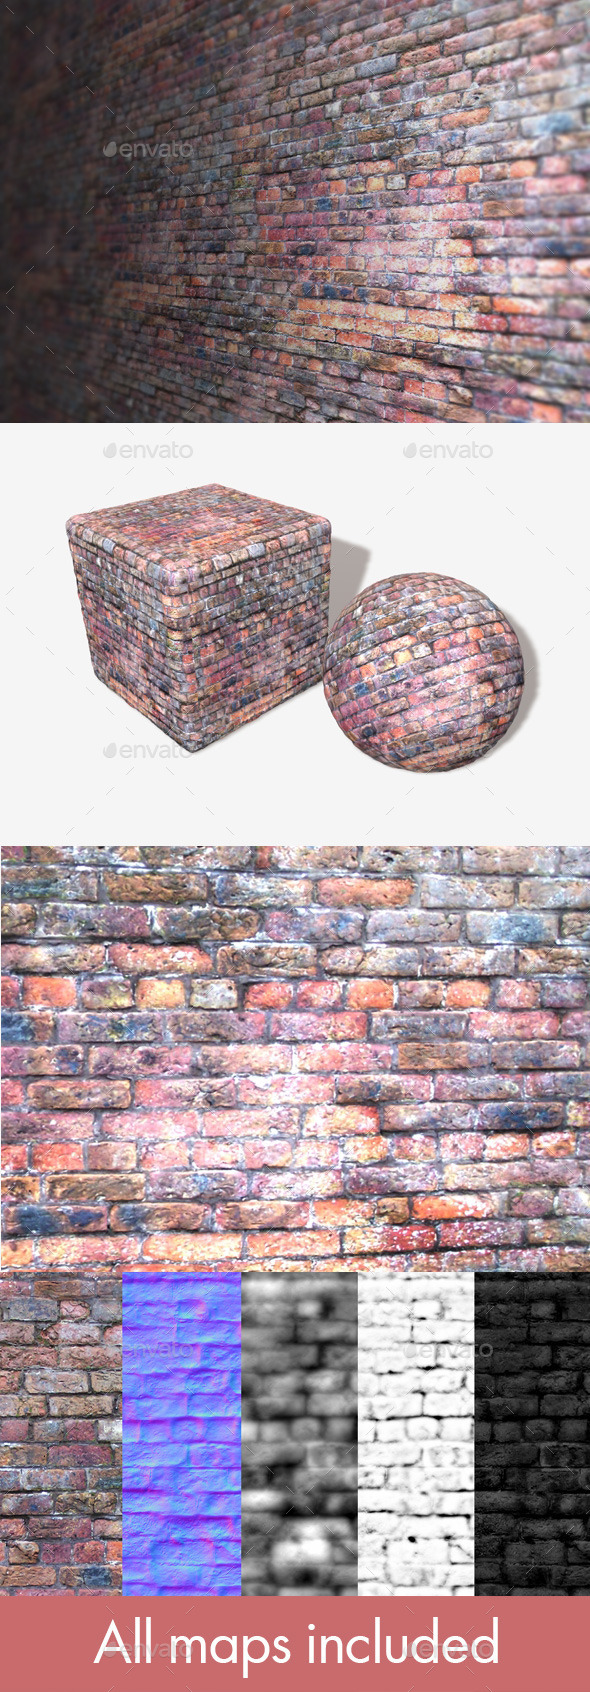 Old Purple Bricks Seamless Texture - 3DOcean Item for Sale